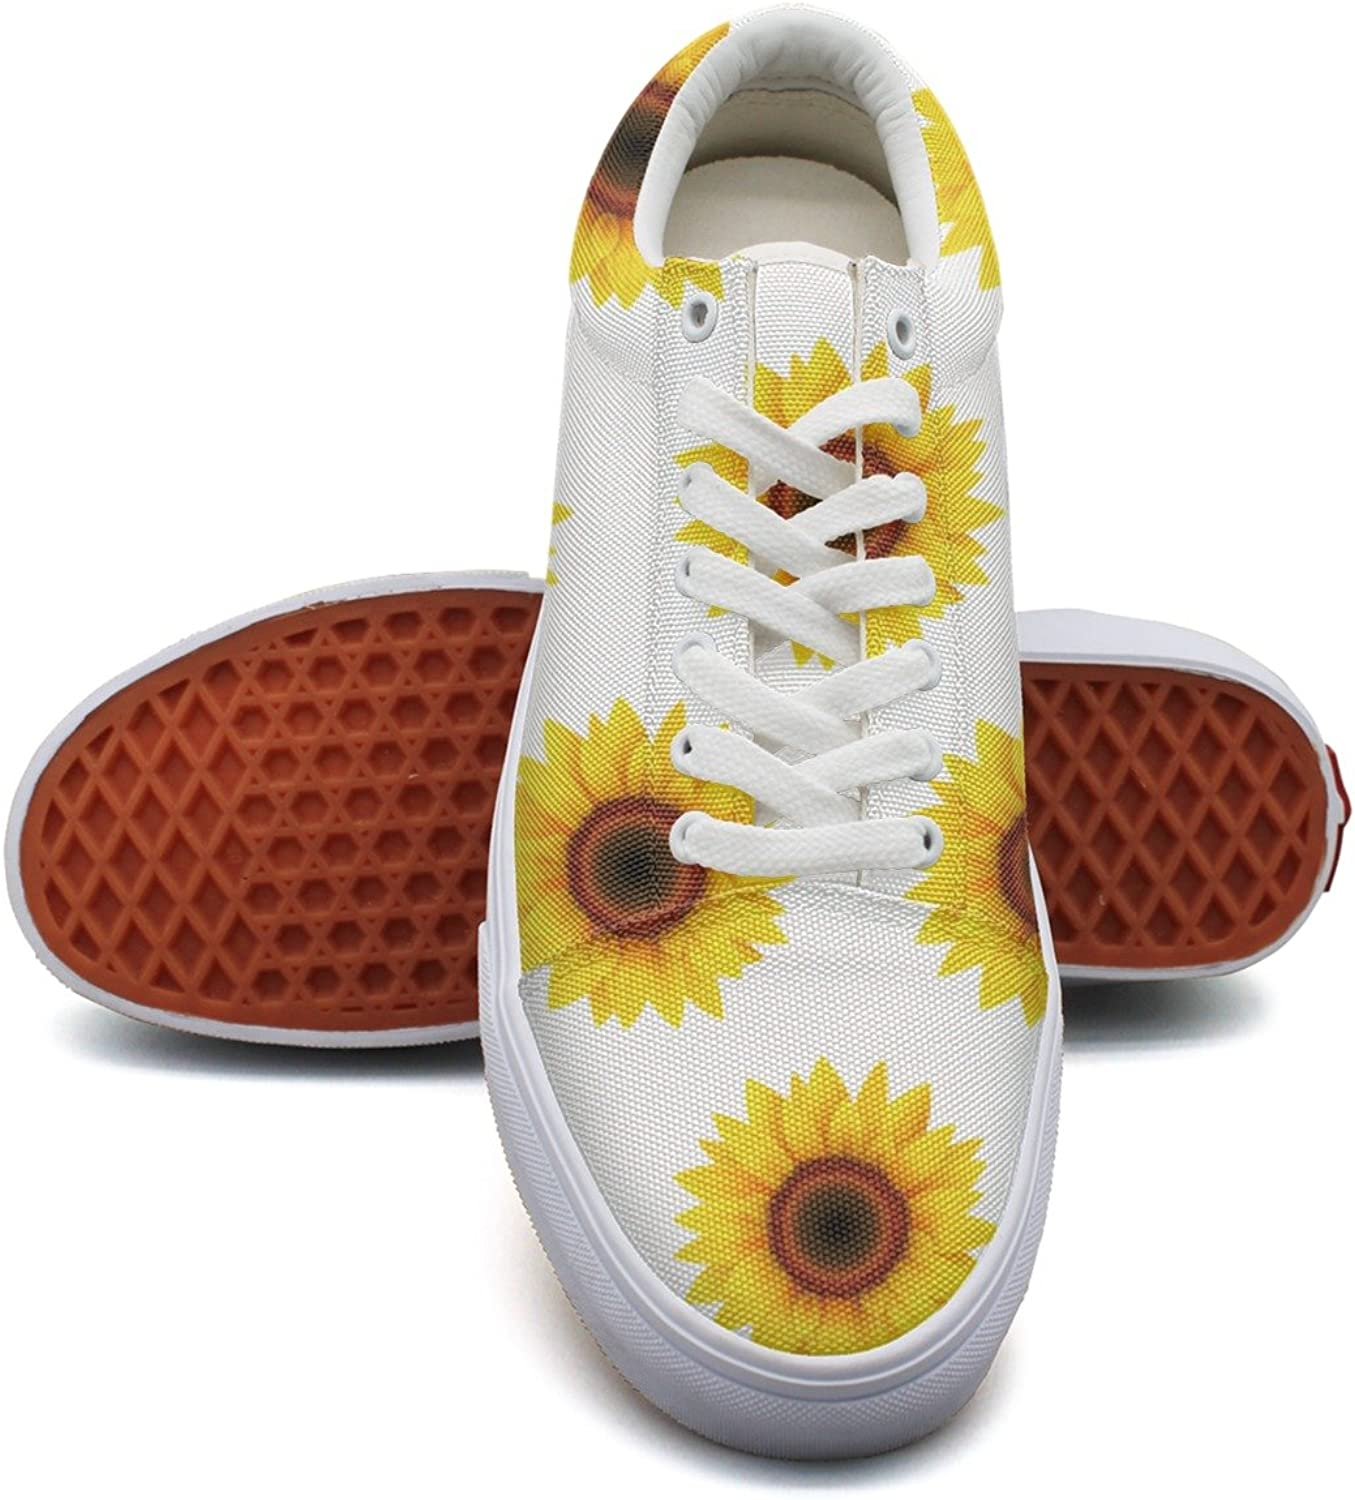 Feenfling Sunflower Floral Repeat Womens Fashion Canvas Sneakers Low Top Neon Sneaker for Women